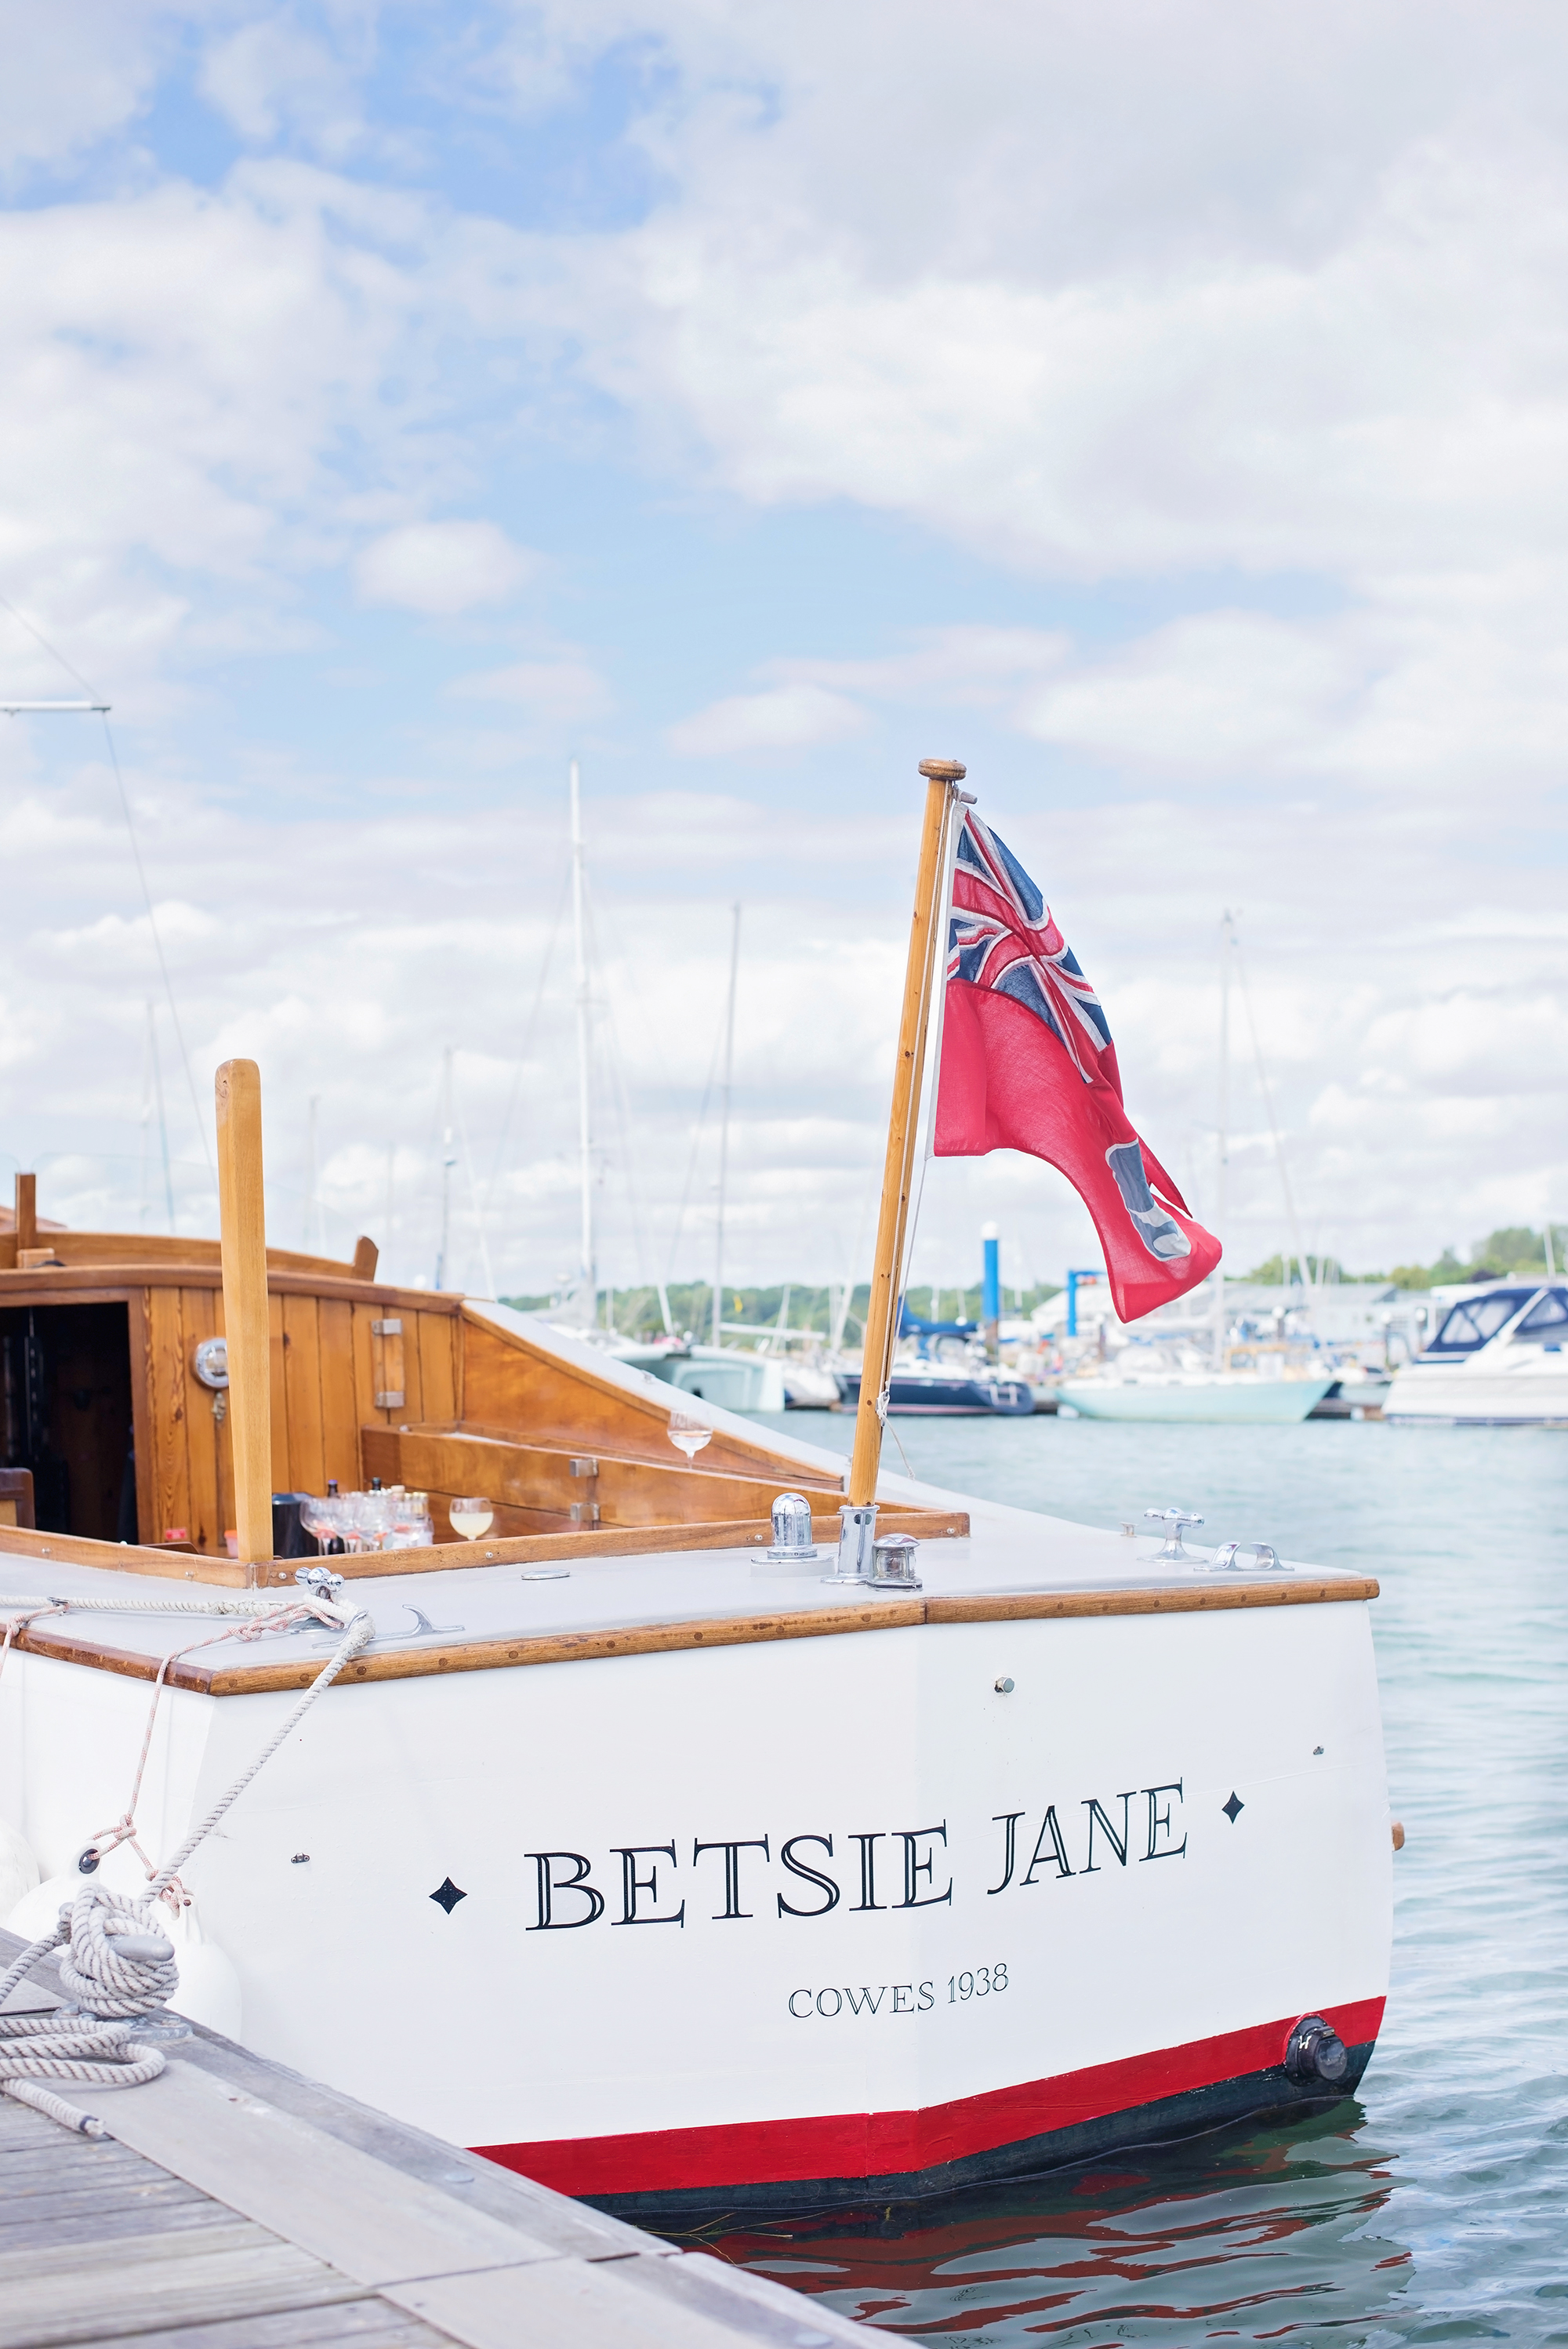 AFTERNOON GIN CRUISE ON THE RIVER HAMBLE